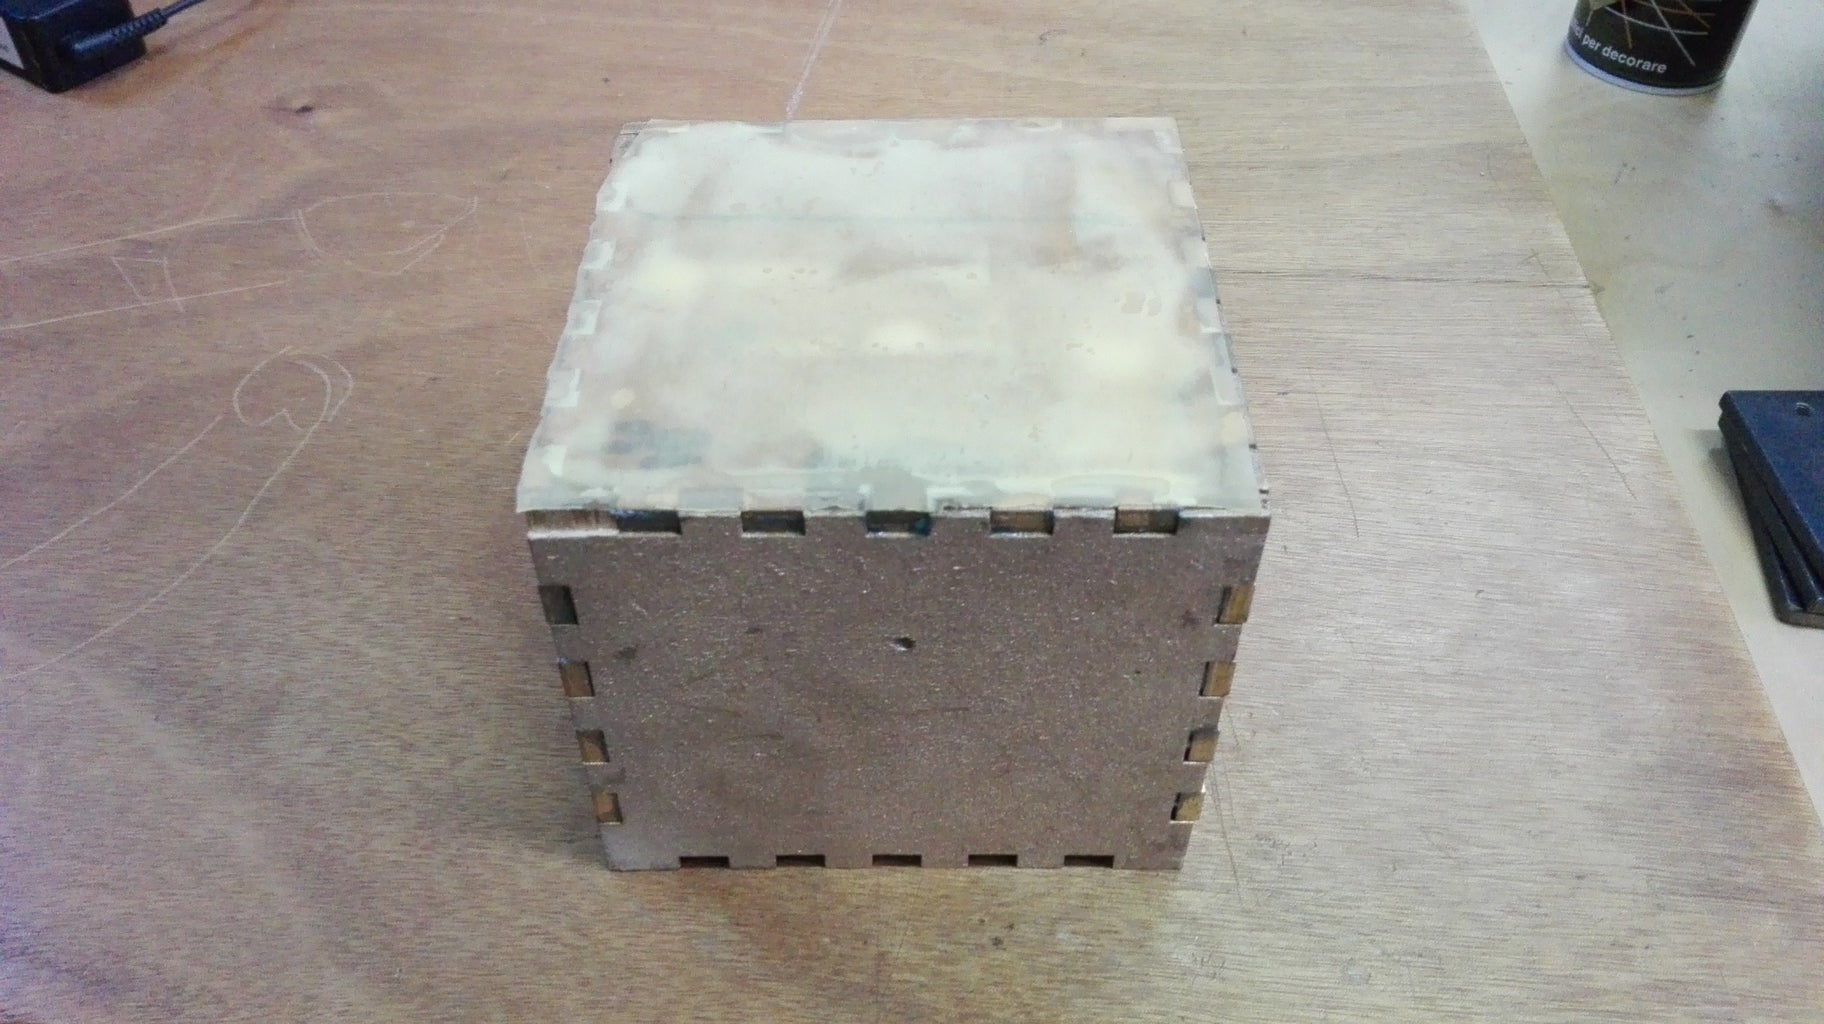 Apply the Rubber on the External Bottom of the Box